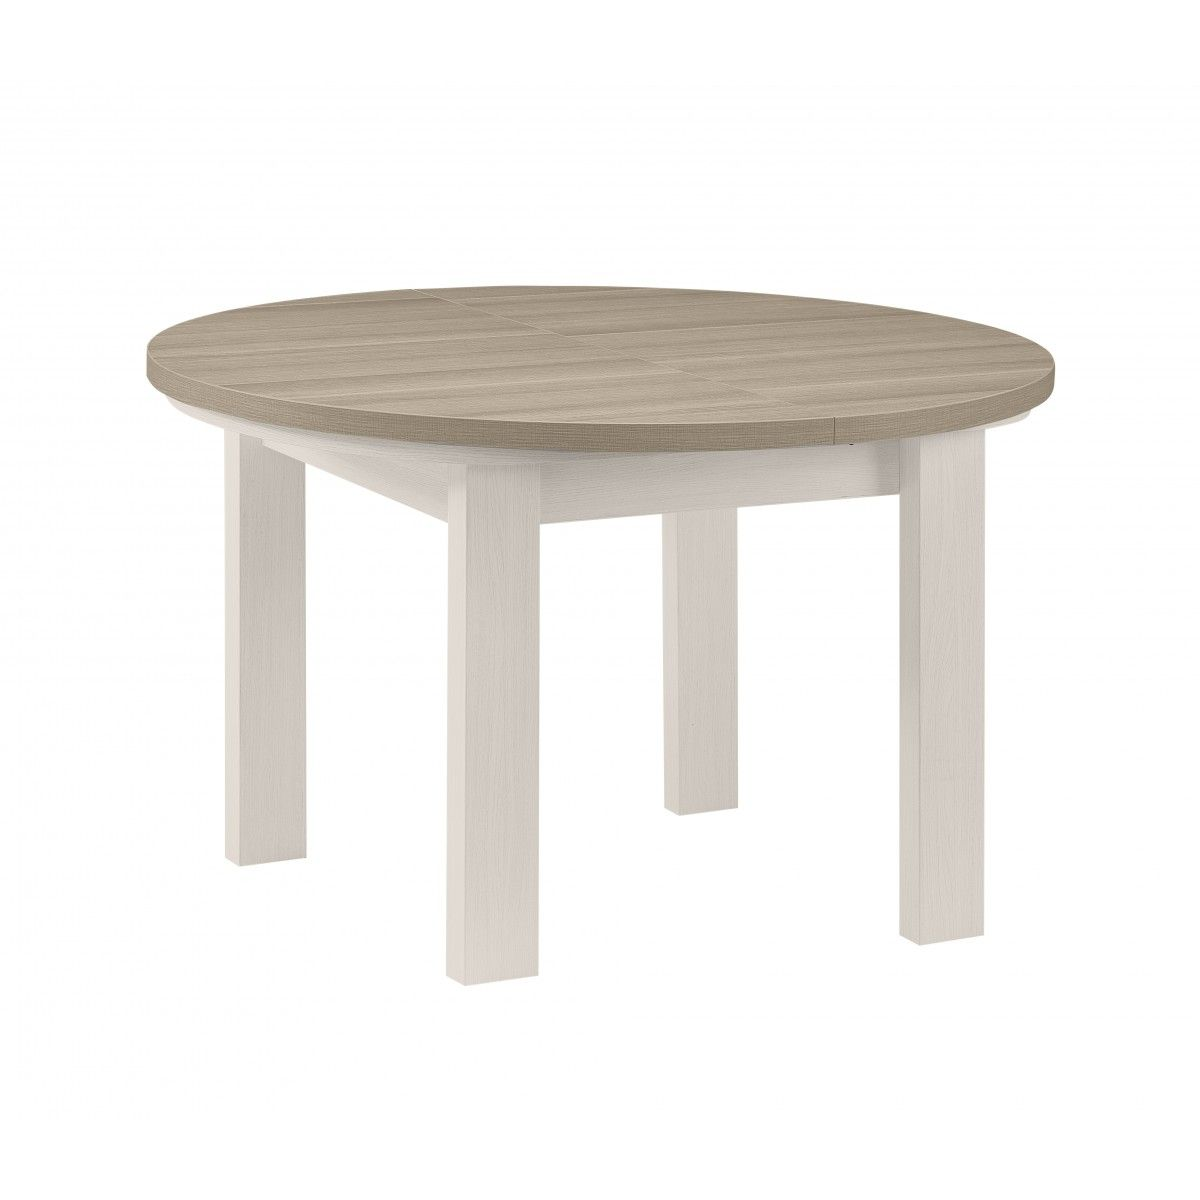 Best mesa redonda extensible toscana with bjursta table for Table extensible ikea bjursta brun noir